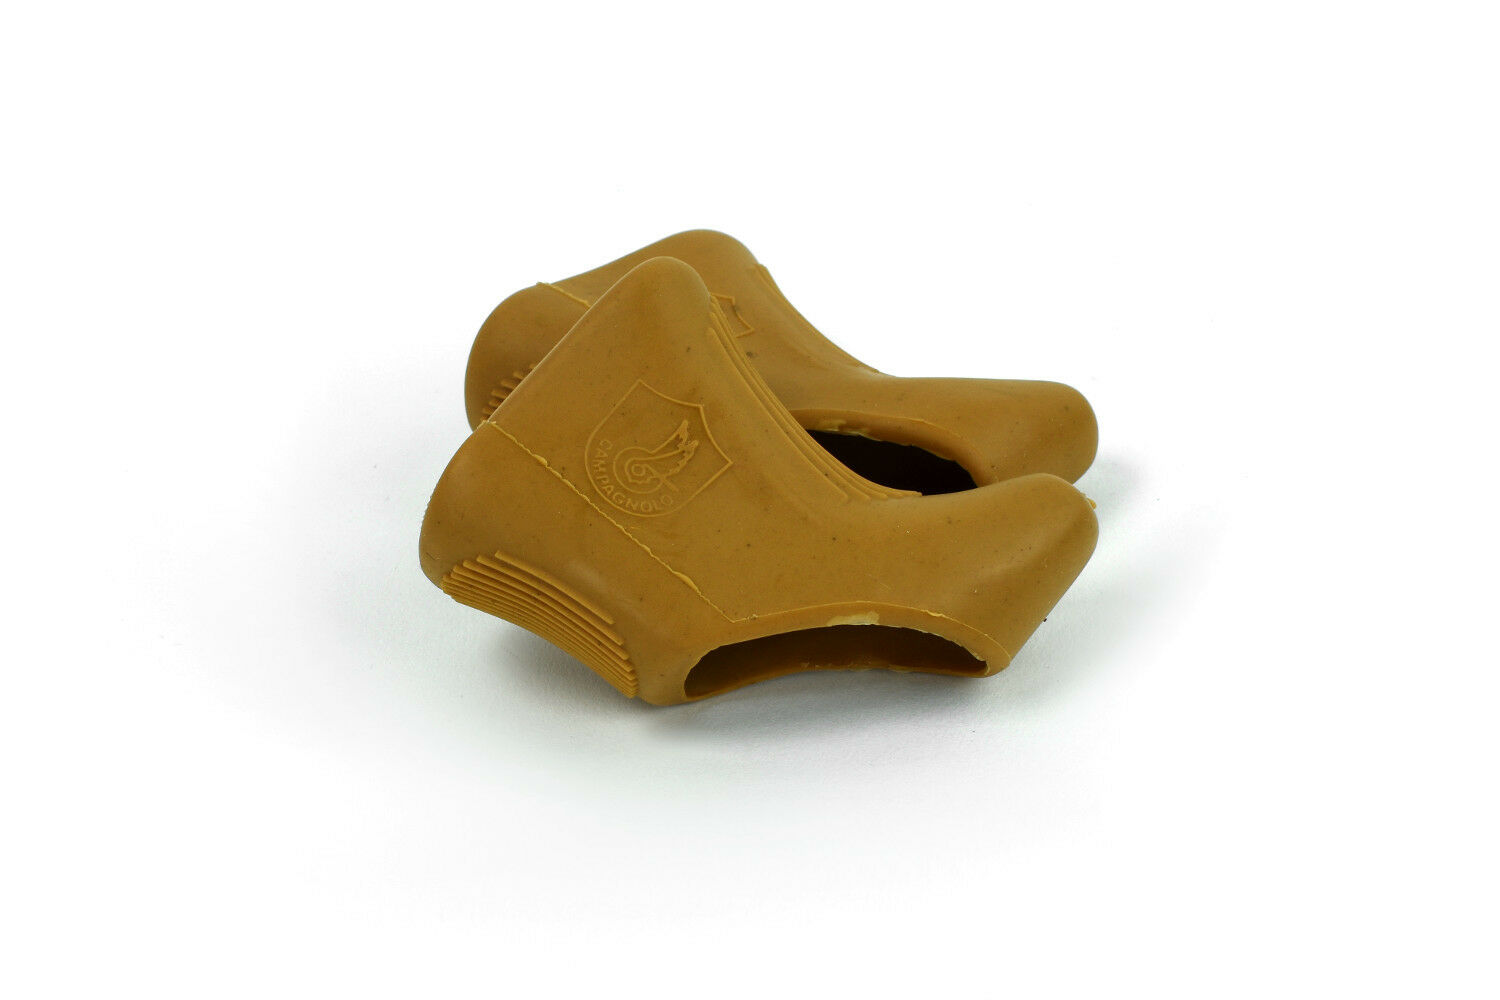 Campagnolo Gran Sport or Super Record  replacement brake hoods - Gum  Brown  high-quality merchandise and convenient, honest service